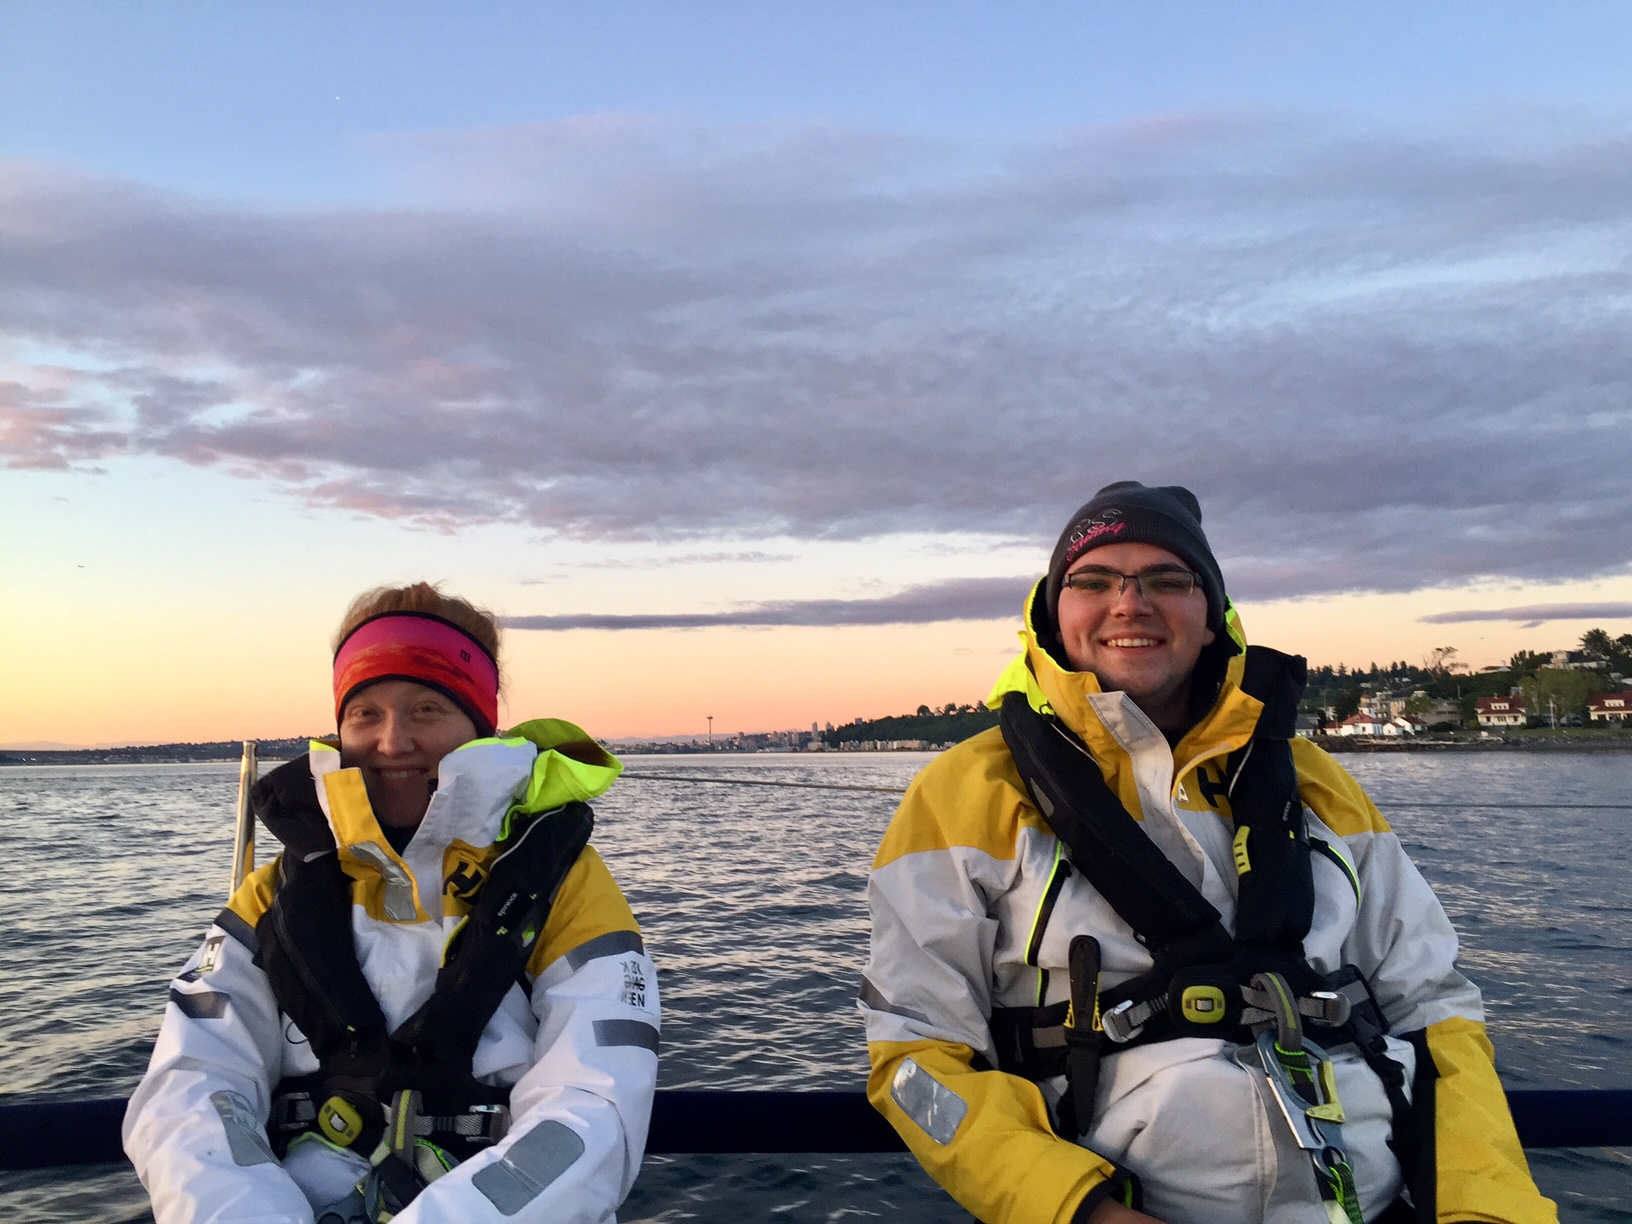 J/88 sailors off Canada